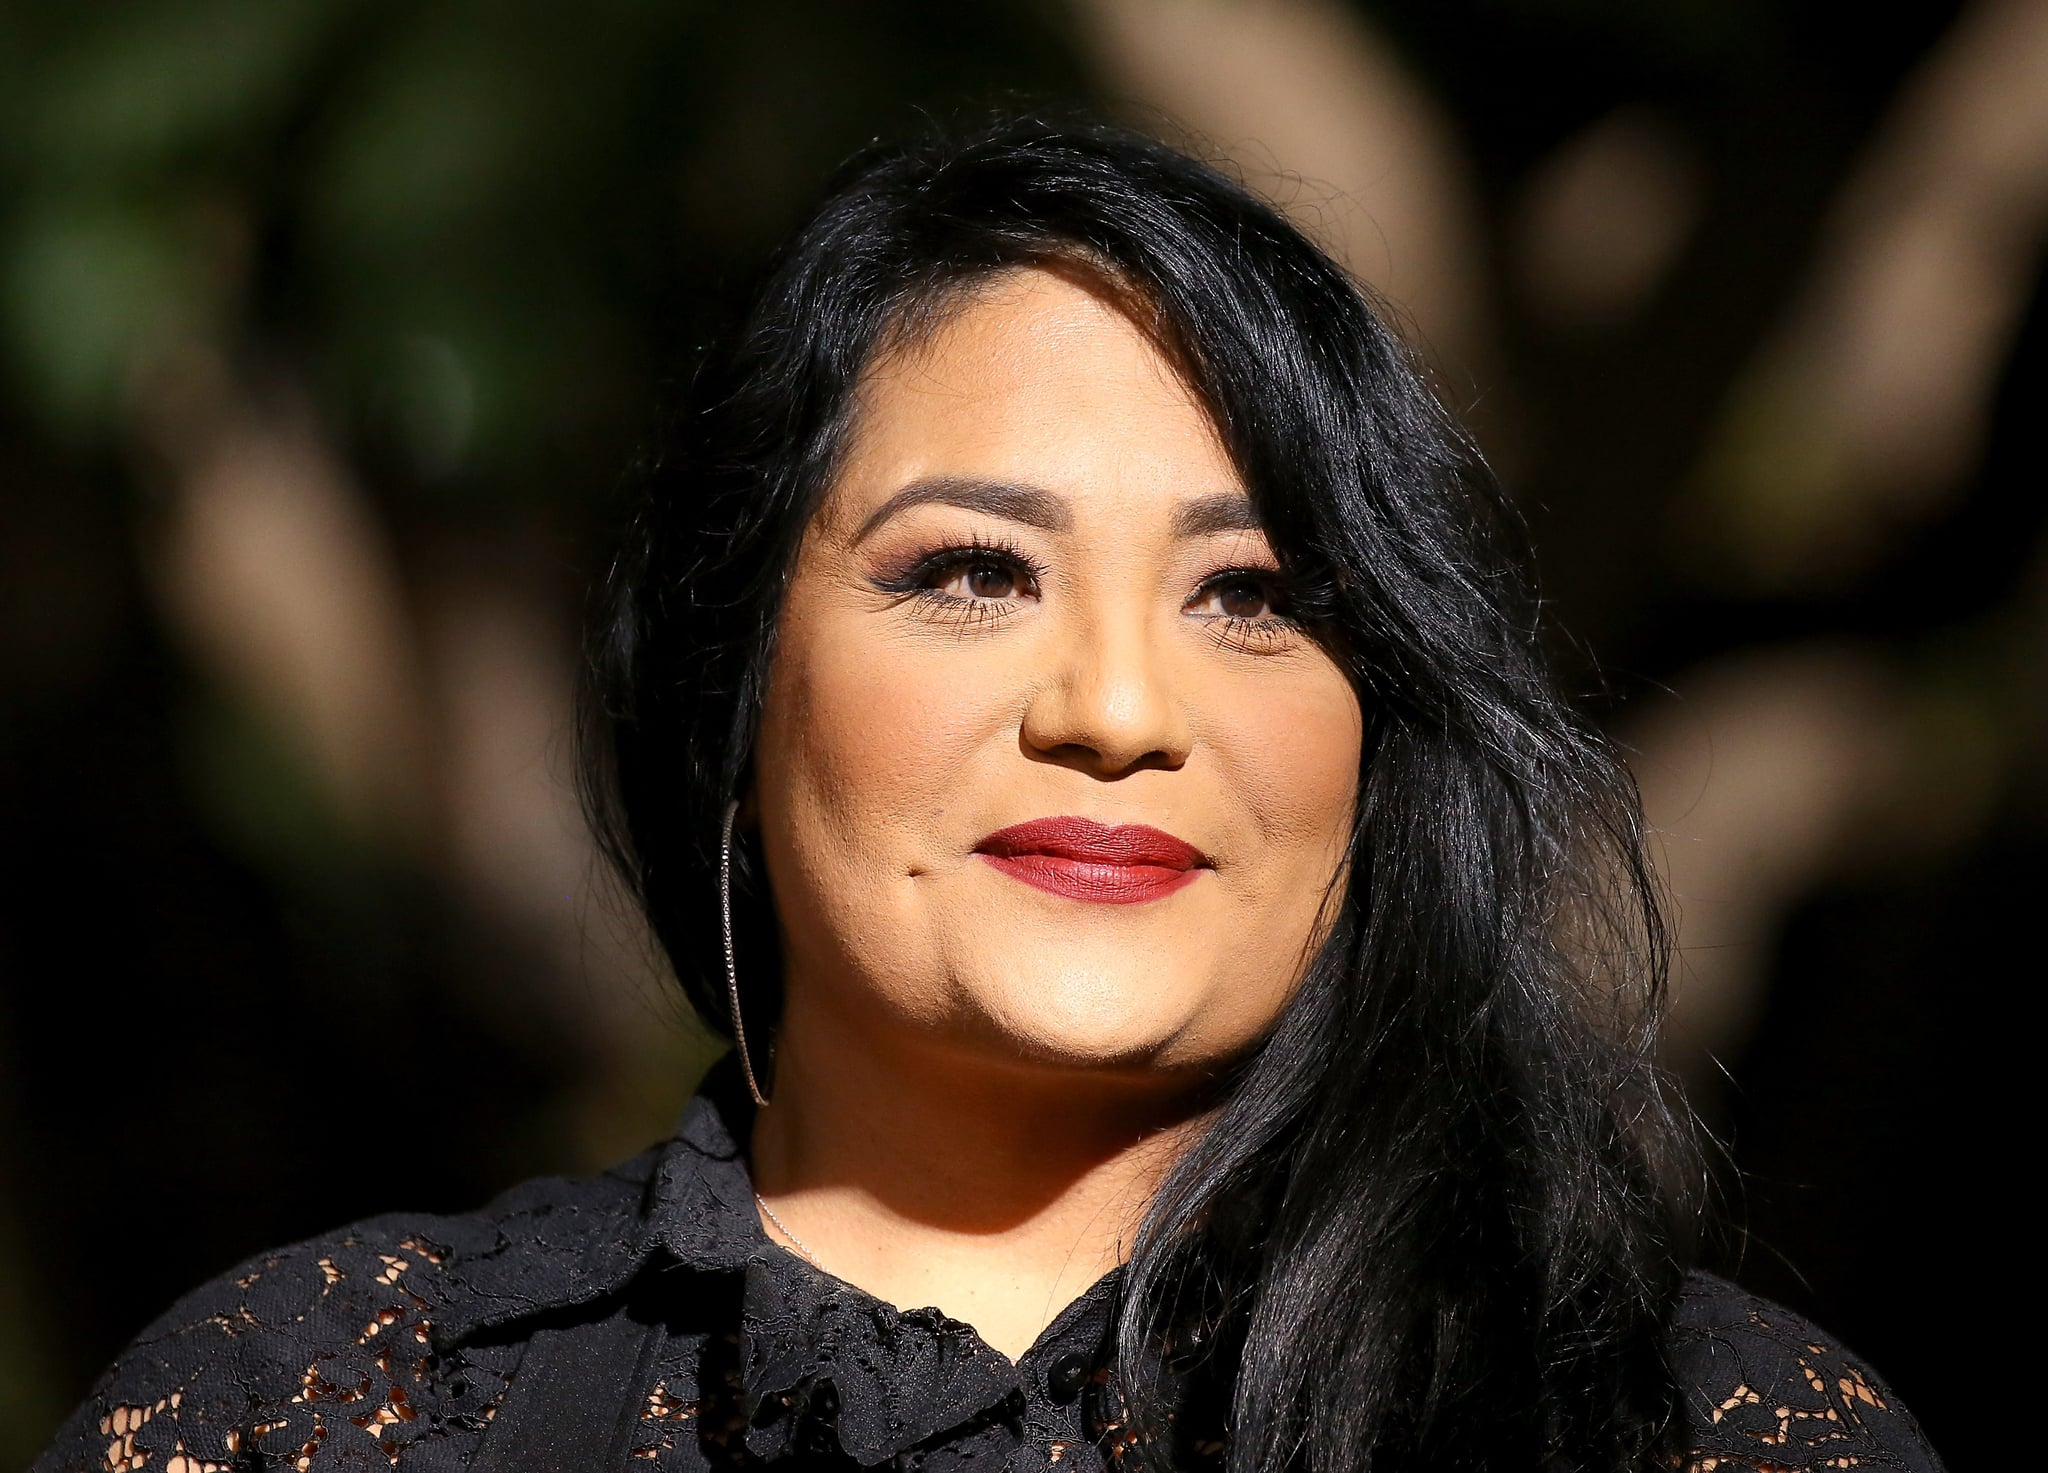 HOLLYWOOD, CA - NOVEMBER 03:  Suzette Quintanilla attends the ceremony honoring Selena Quintanilla with a posthumous Star on The Hollywood Walk of Fame held November 3, 2017 in Hollywood, California.  (Photo by Michael Tran/FilmMagic)